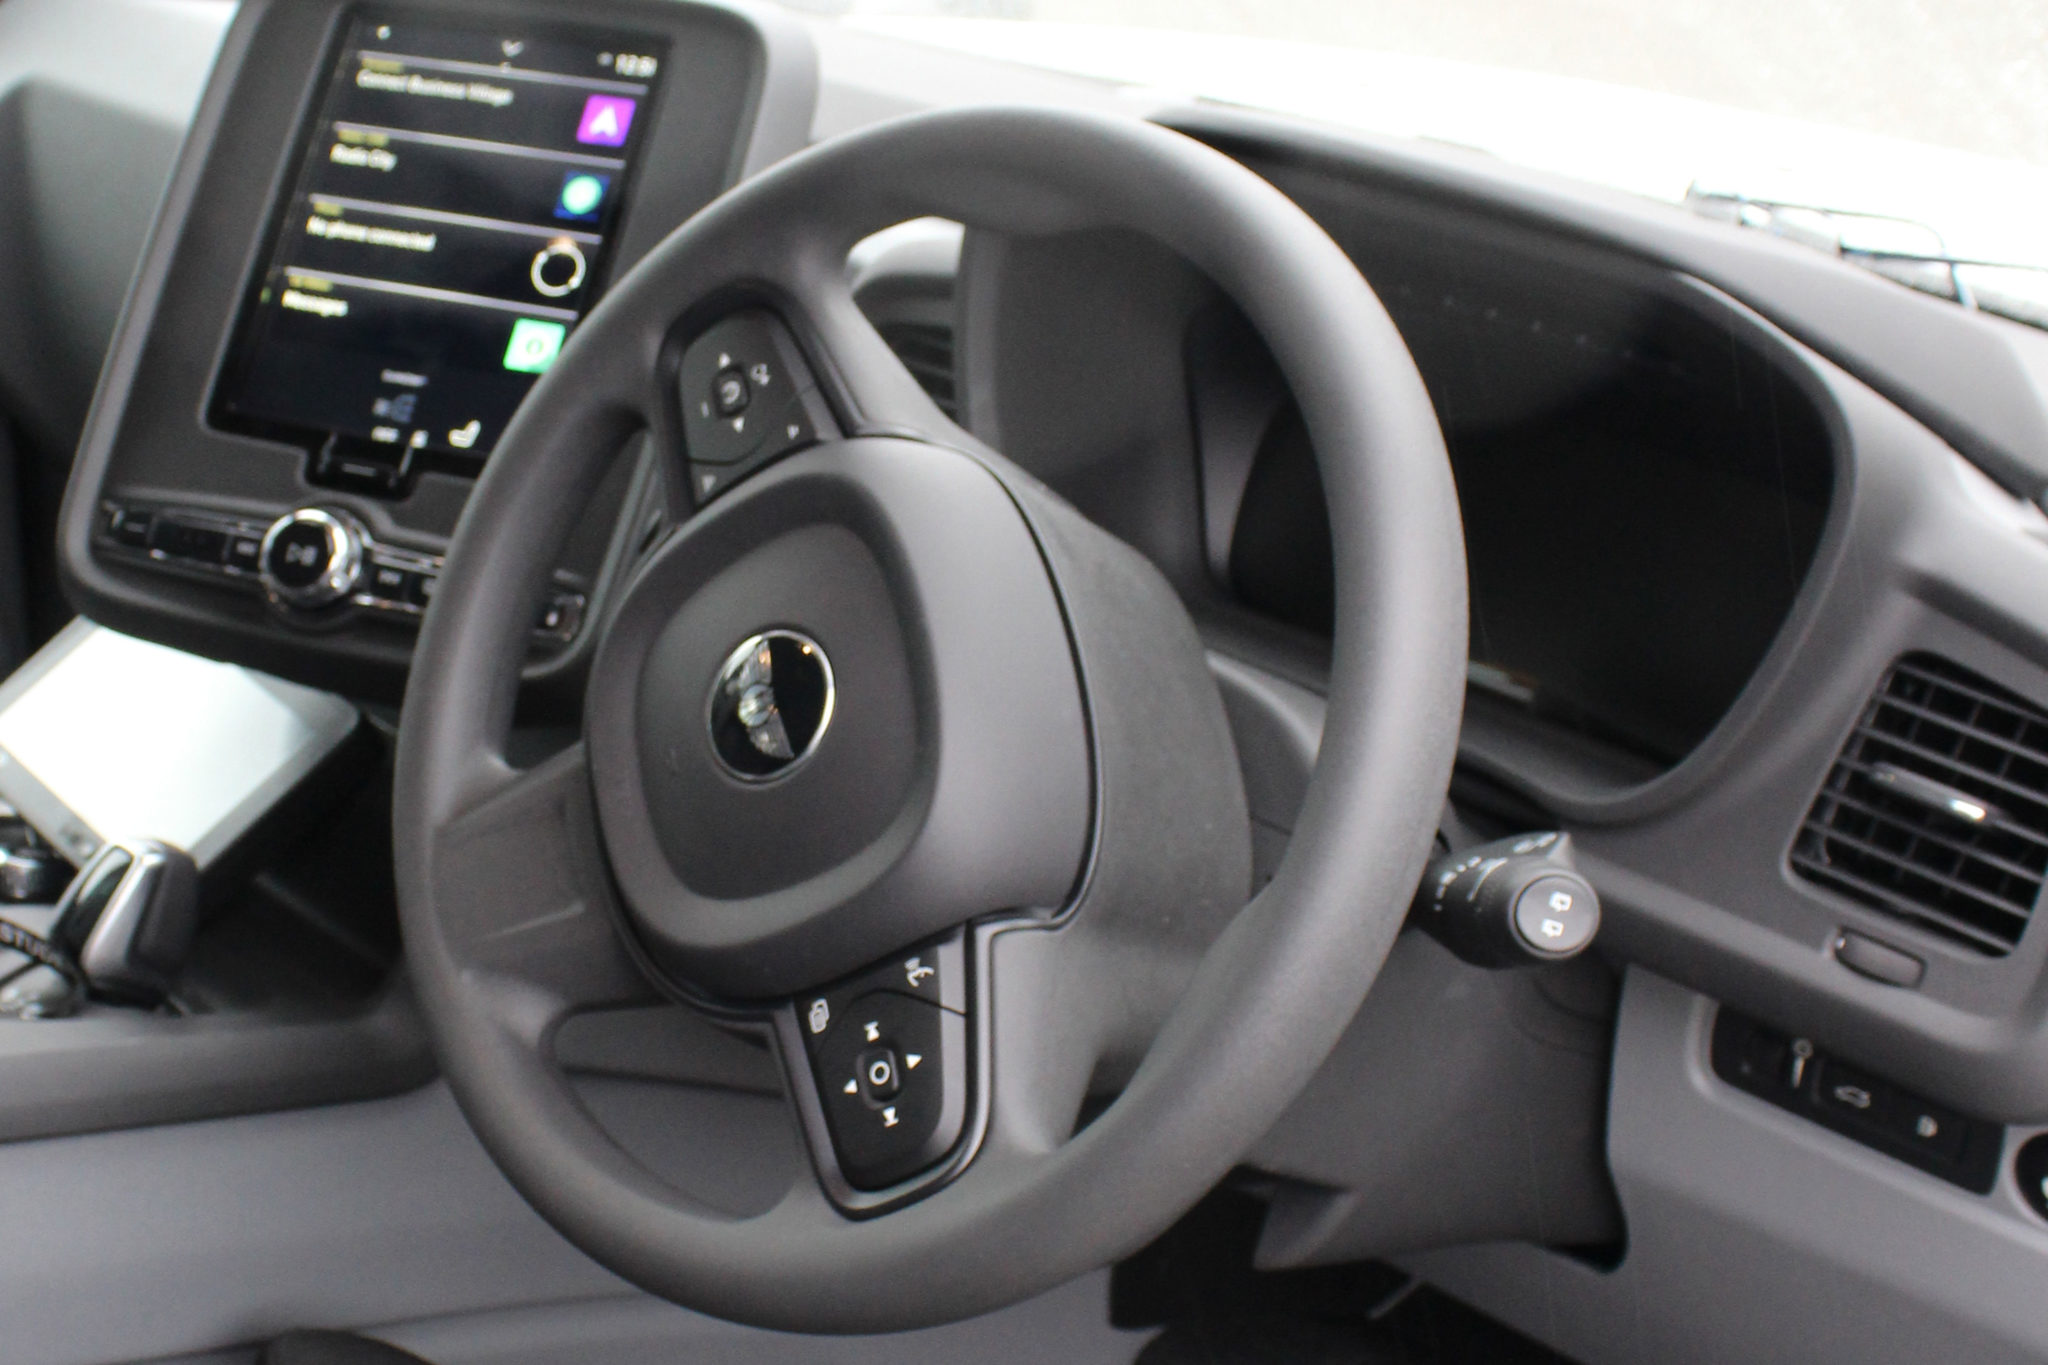 Electric Black Cab front console